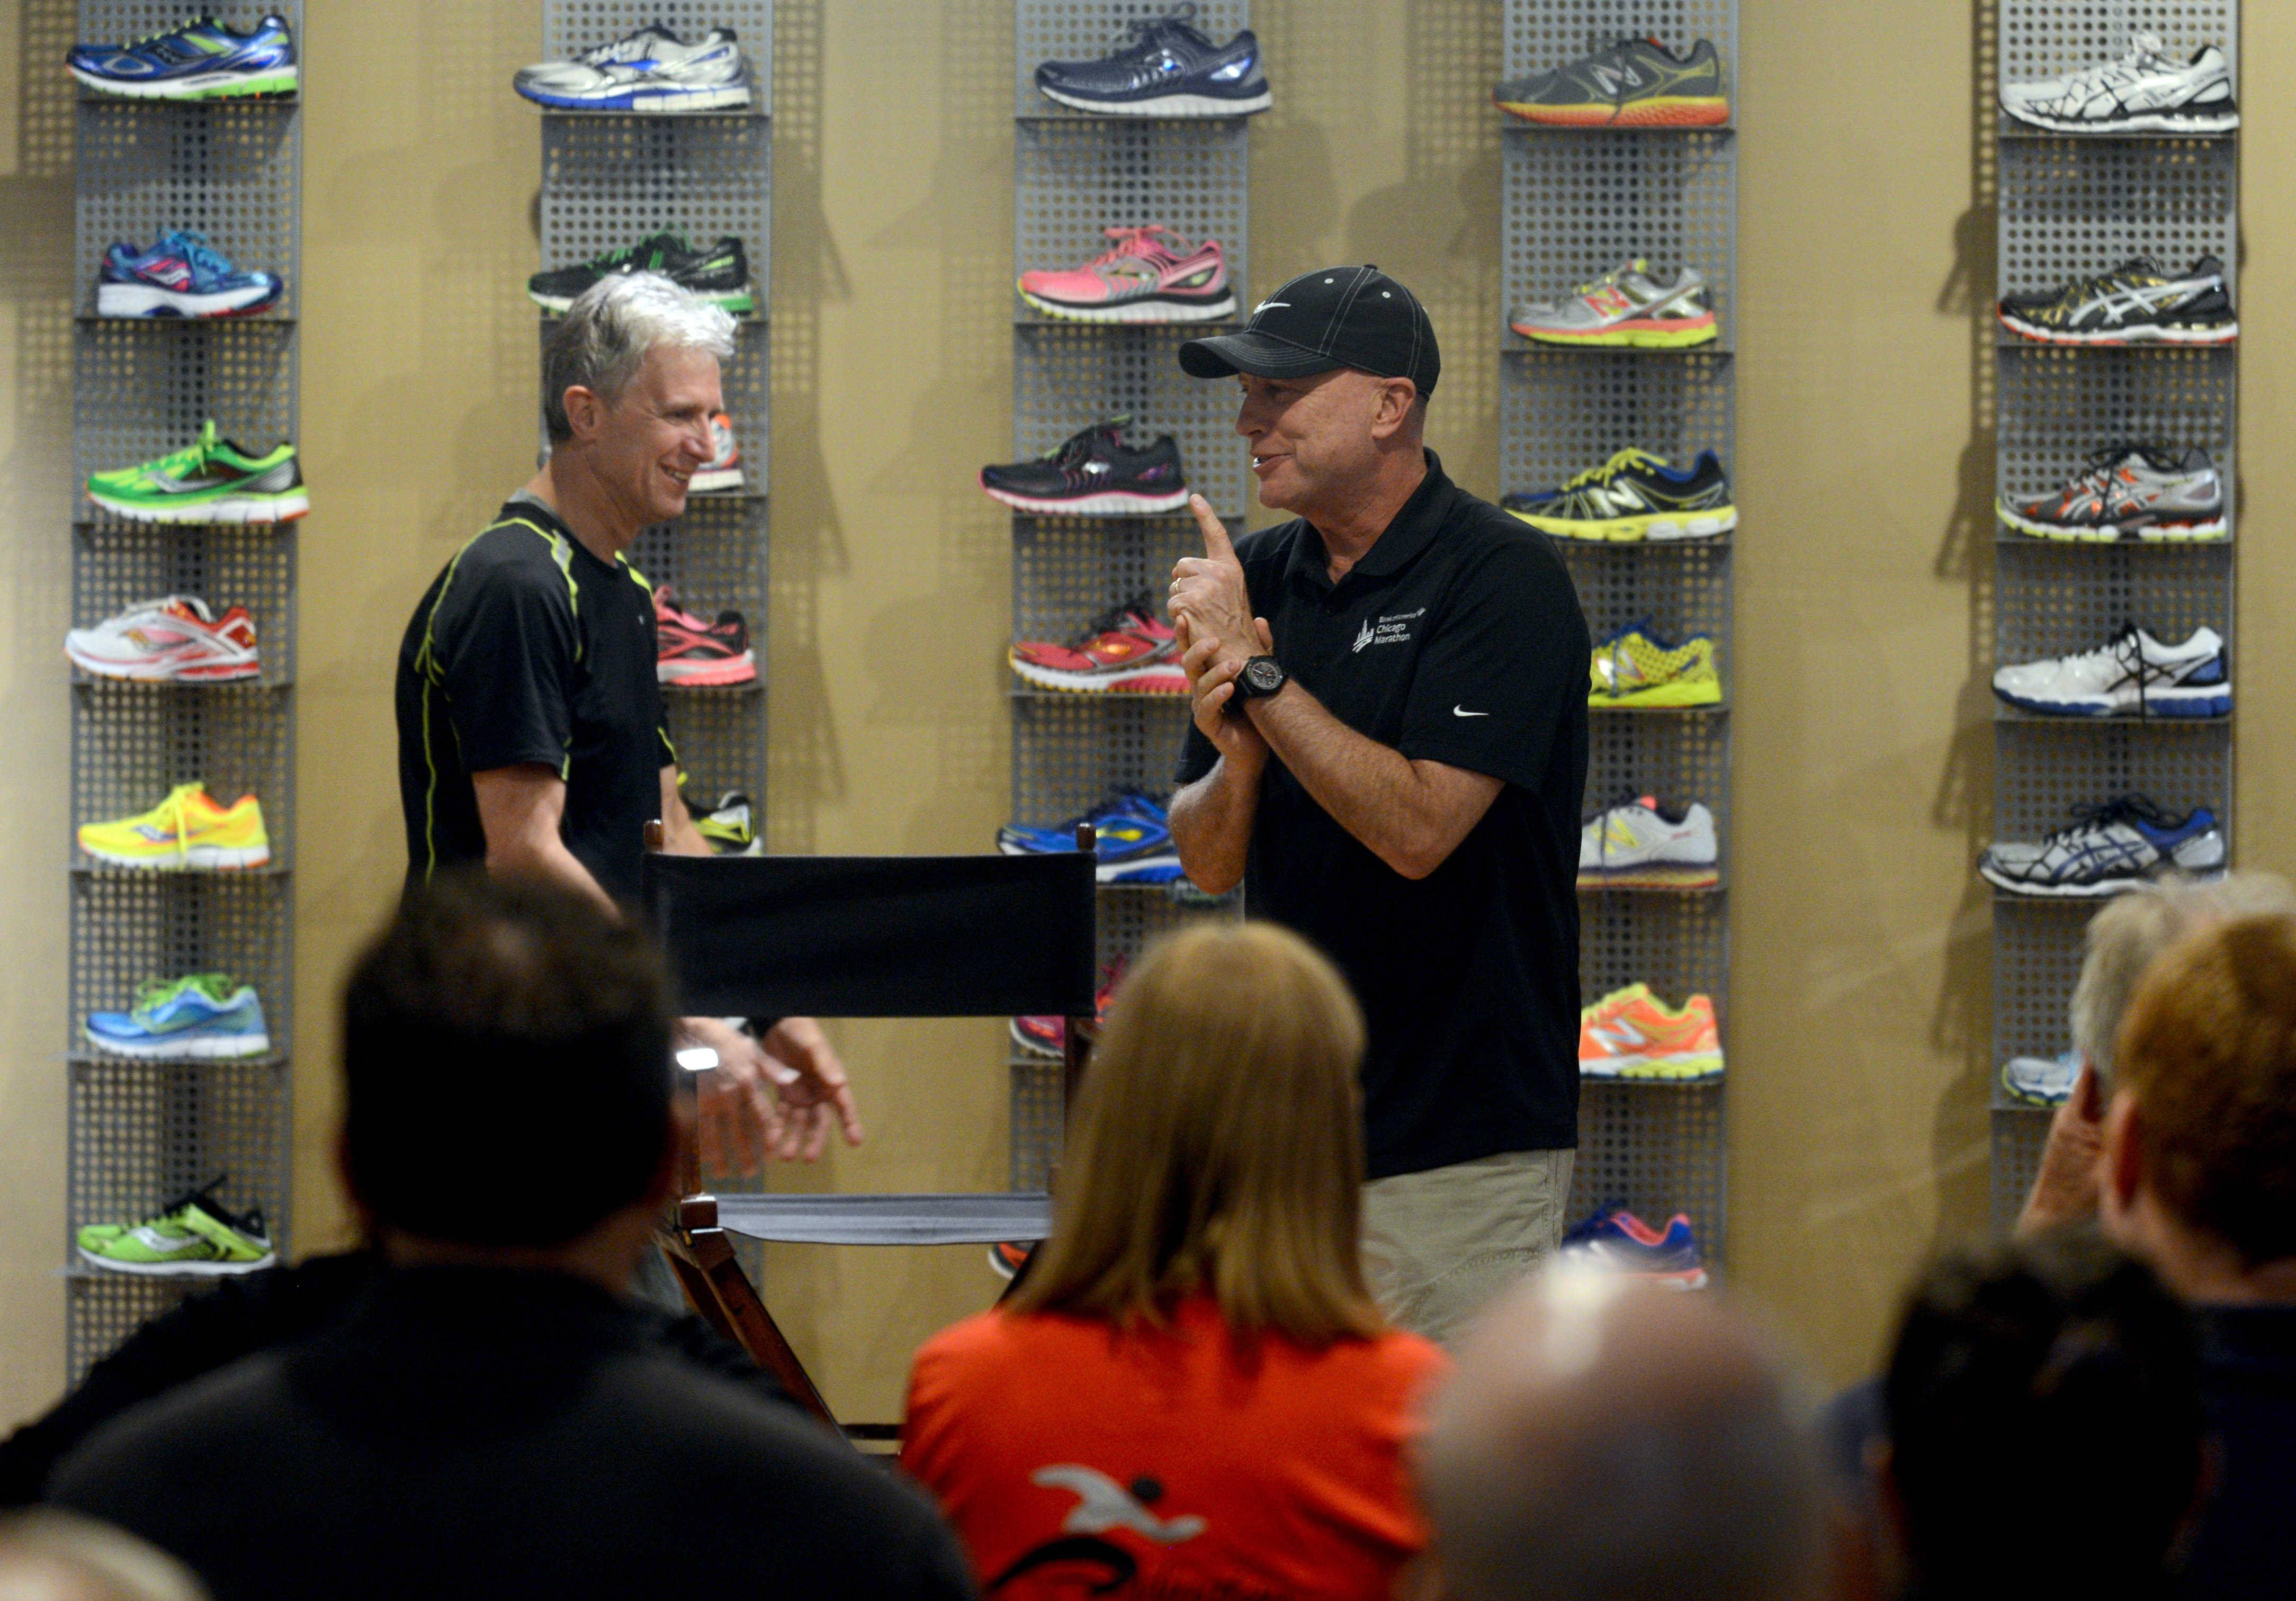 Carey Pinkowski, right, race director for the Chicago Marathon, on Thursday night is introduced by Mark Rouse, left, at the Runners High 'n' Tri shop in downtown Arlington Heights. Rouse is co-owner of the shop.